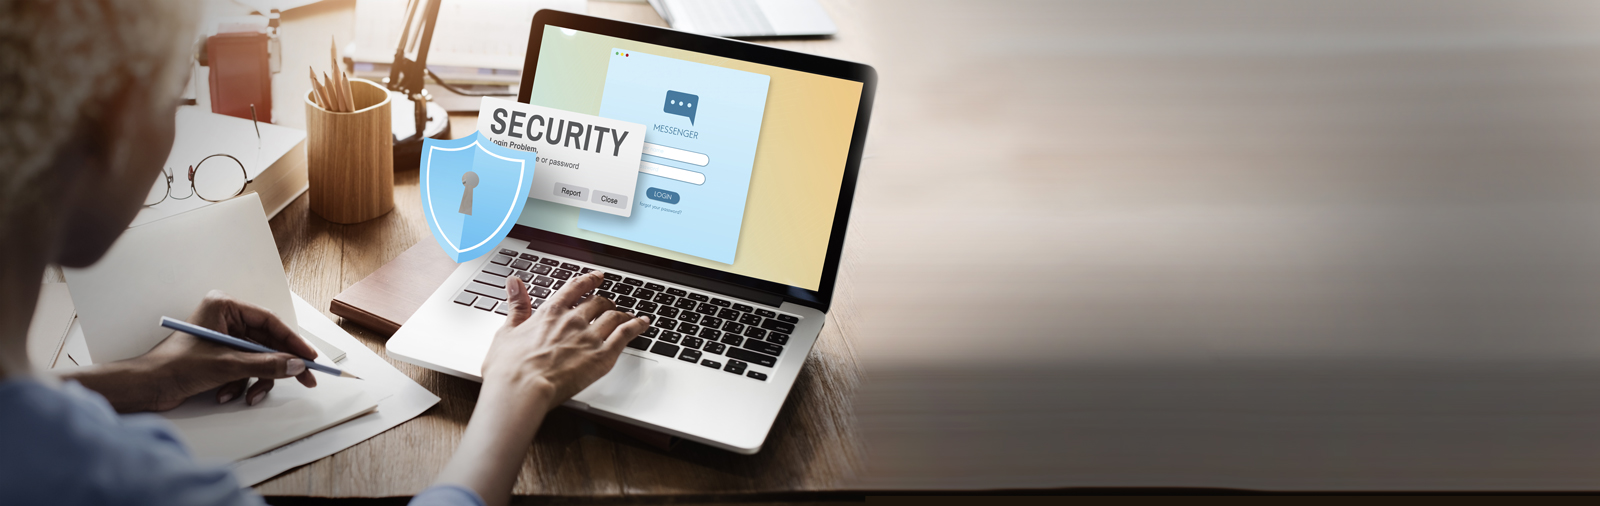 Do's and Don'ts of The Online Account Security